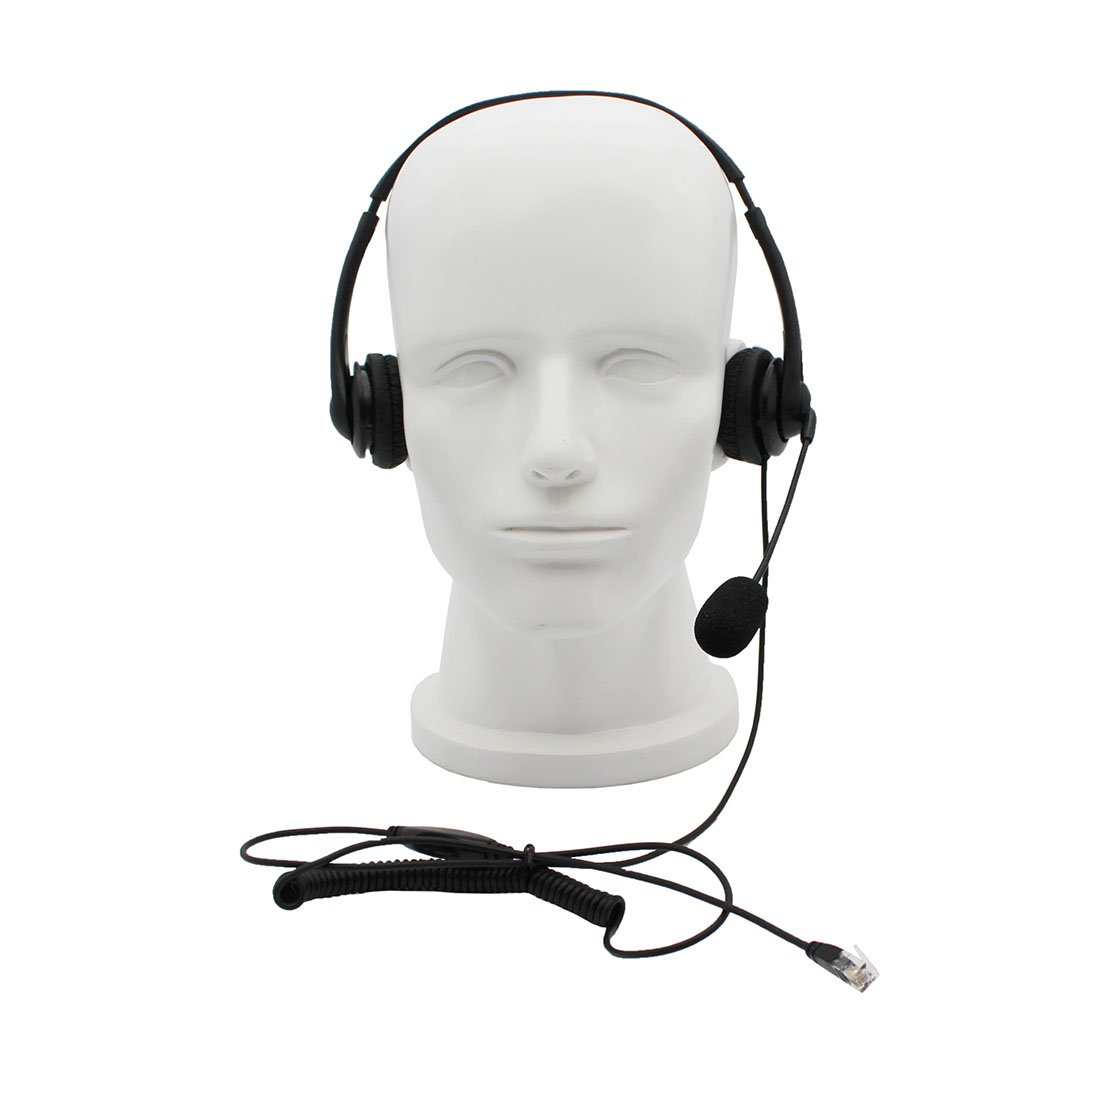 GoodQbuy Call Center Telephone /IP Phone Headset RJ9 Headphone with Mic for  Cisco IP Phones 7940 7941 7942 7945 7960 7961 7962 7931G 7962G 7965G and